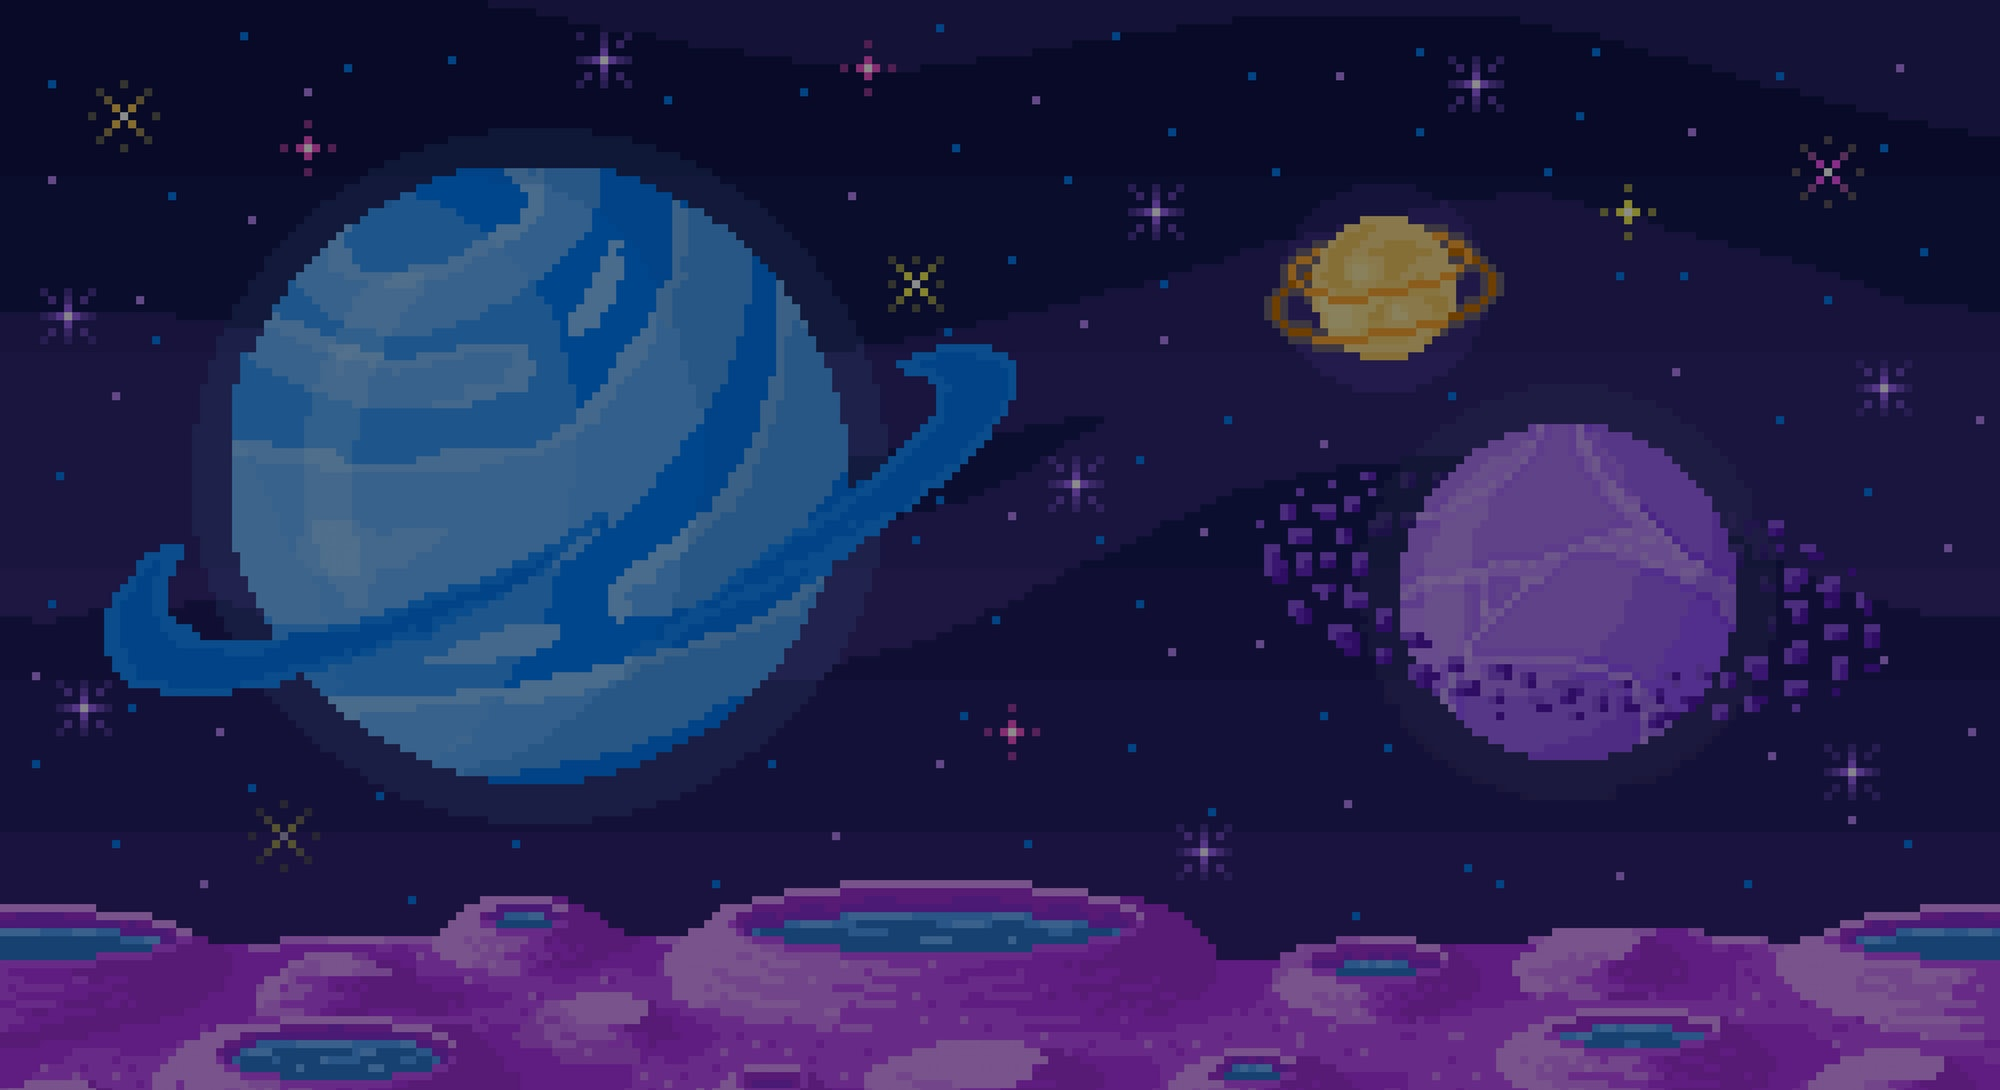 Space planet in pixel art. Background of space planet. Crater landscape with mountains, planet and stars. Pixelated location for game or application. 8 bit video game. Galaxy area with few planets